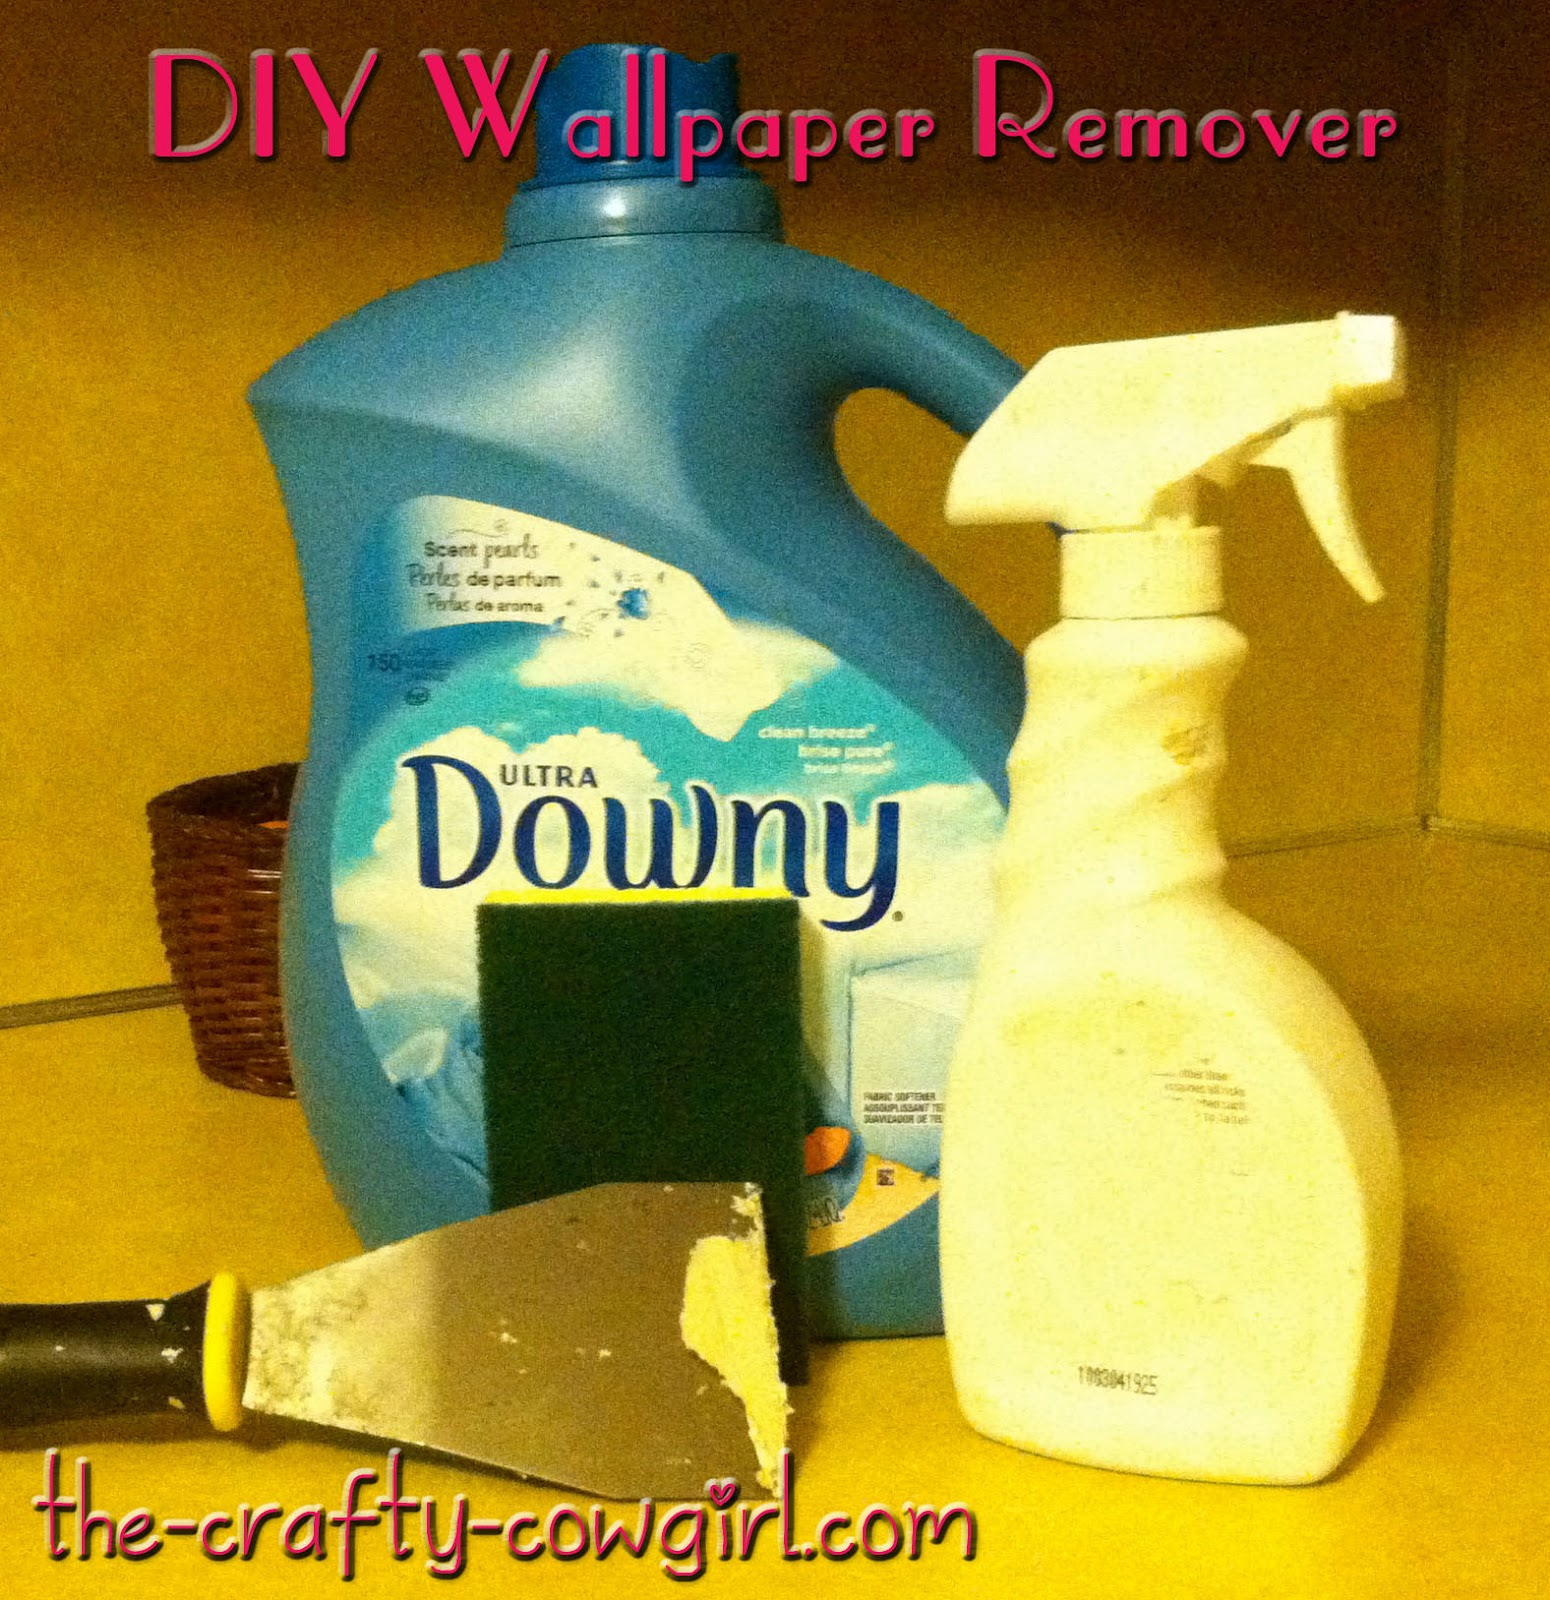 all new pix1: Dif Gel Wallpaper Remover